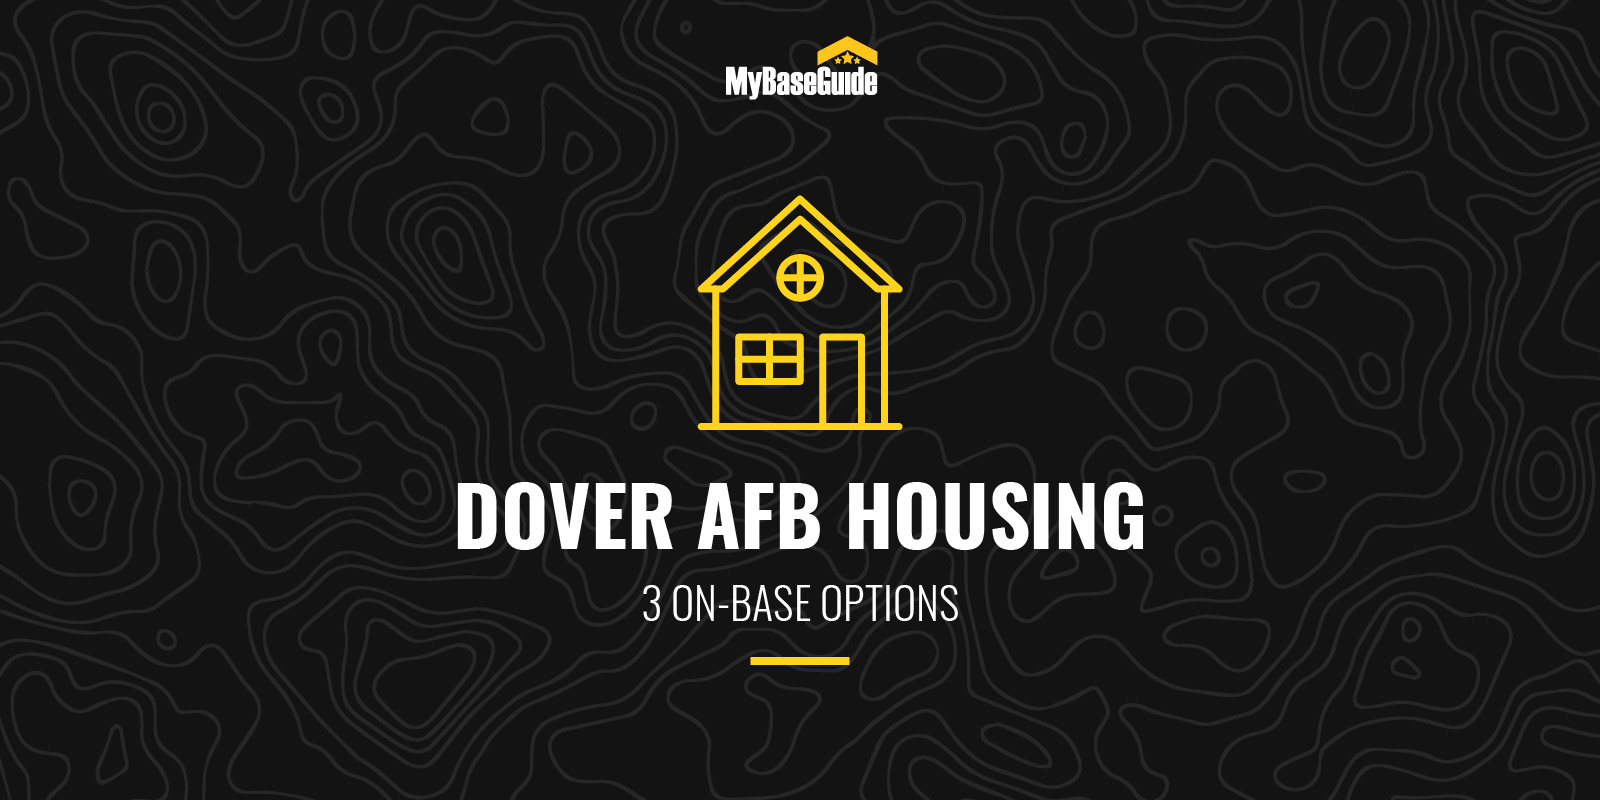 Dover AFB Housing: 3 On-Base Options